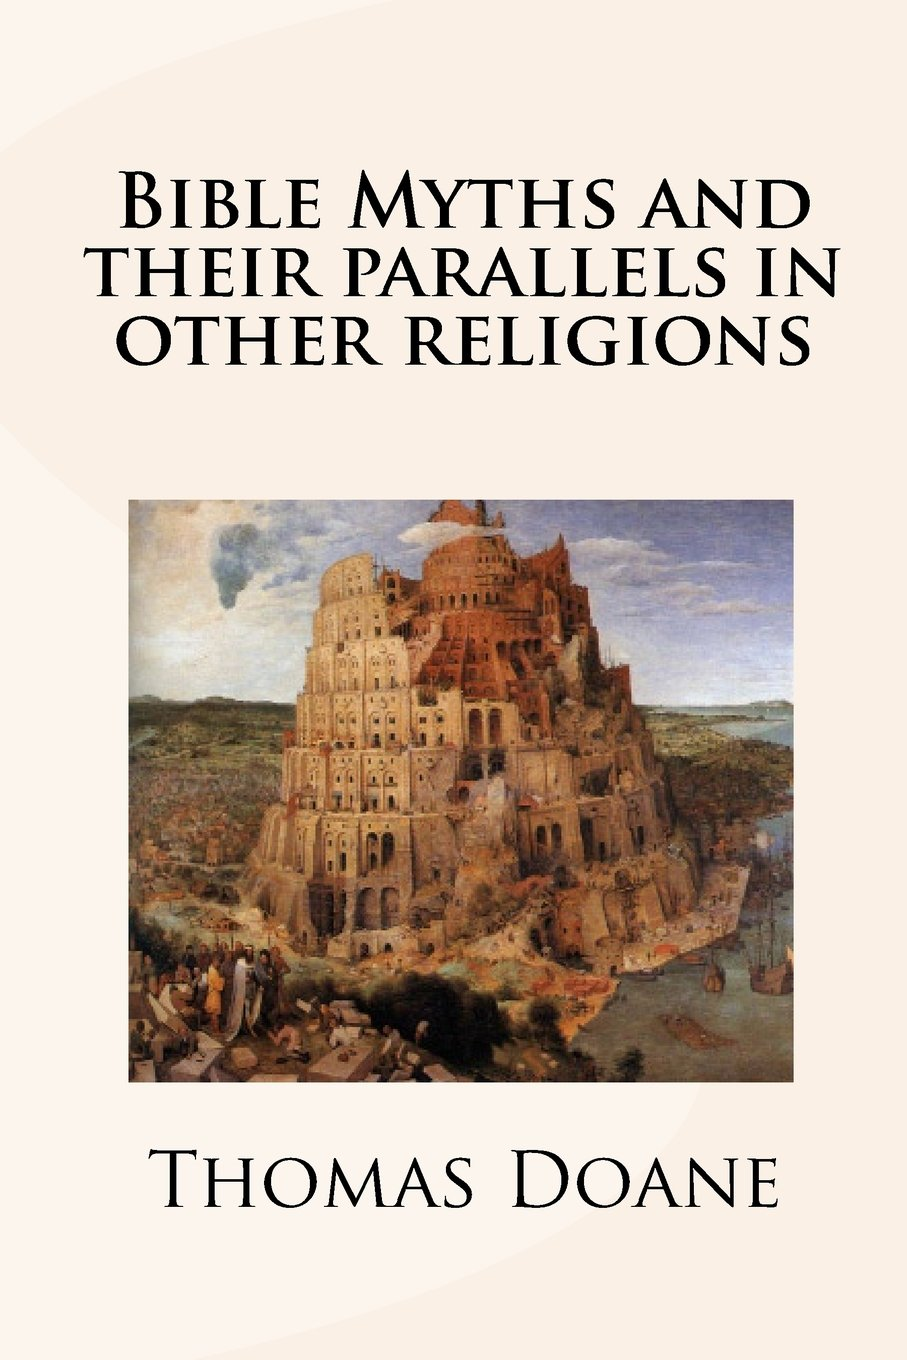 Bible Myths And Their Parallels In Other Religions: Thomas Doane:  9781440489853: Amazon.com: Books